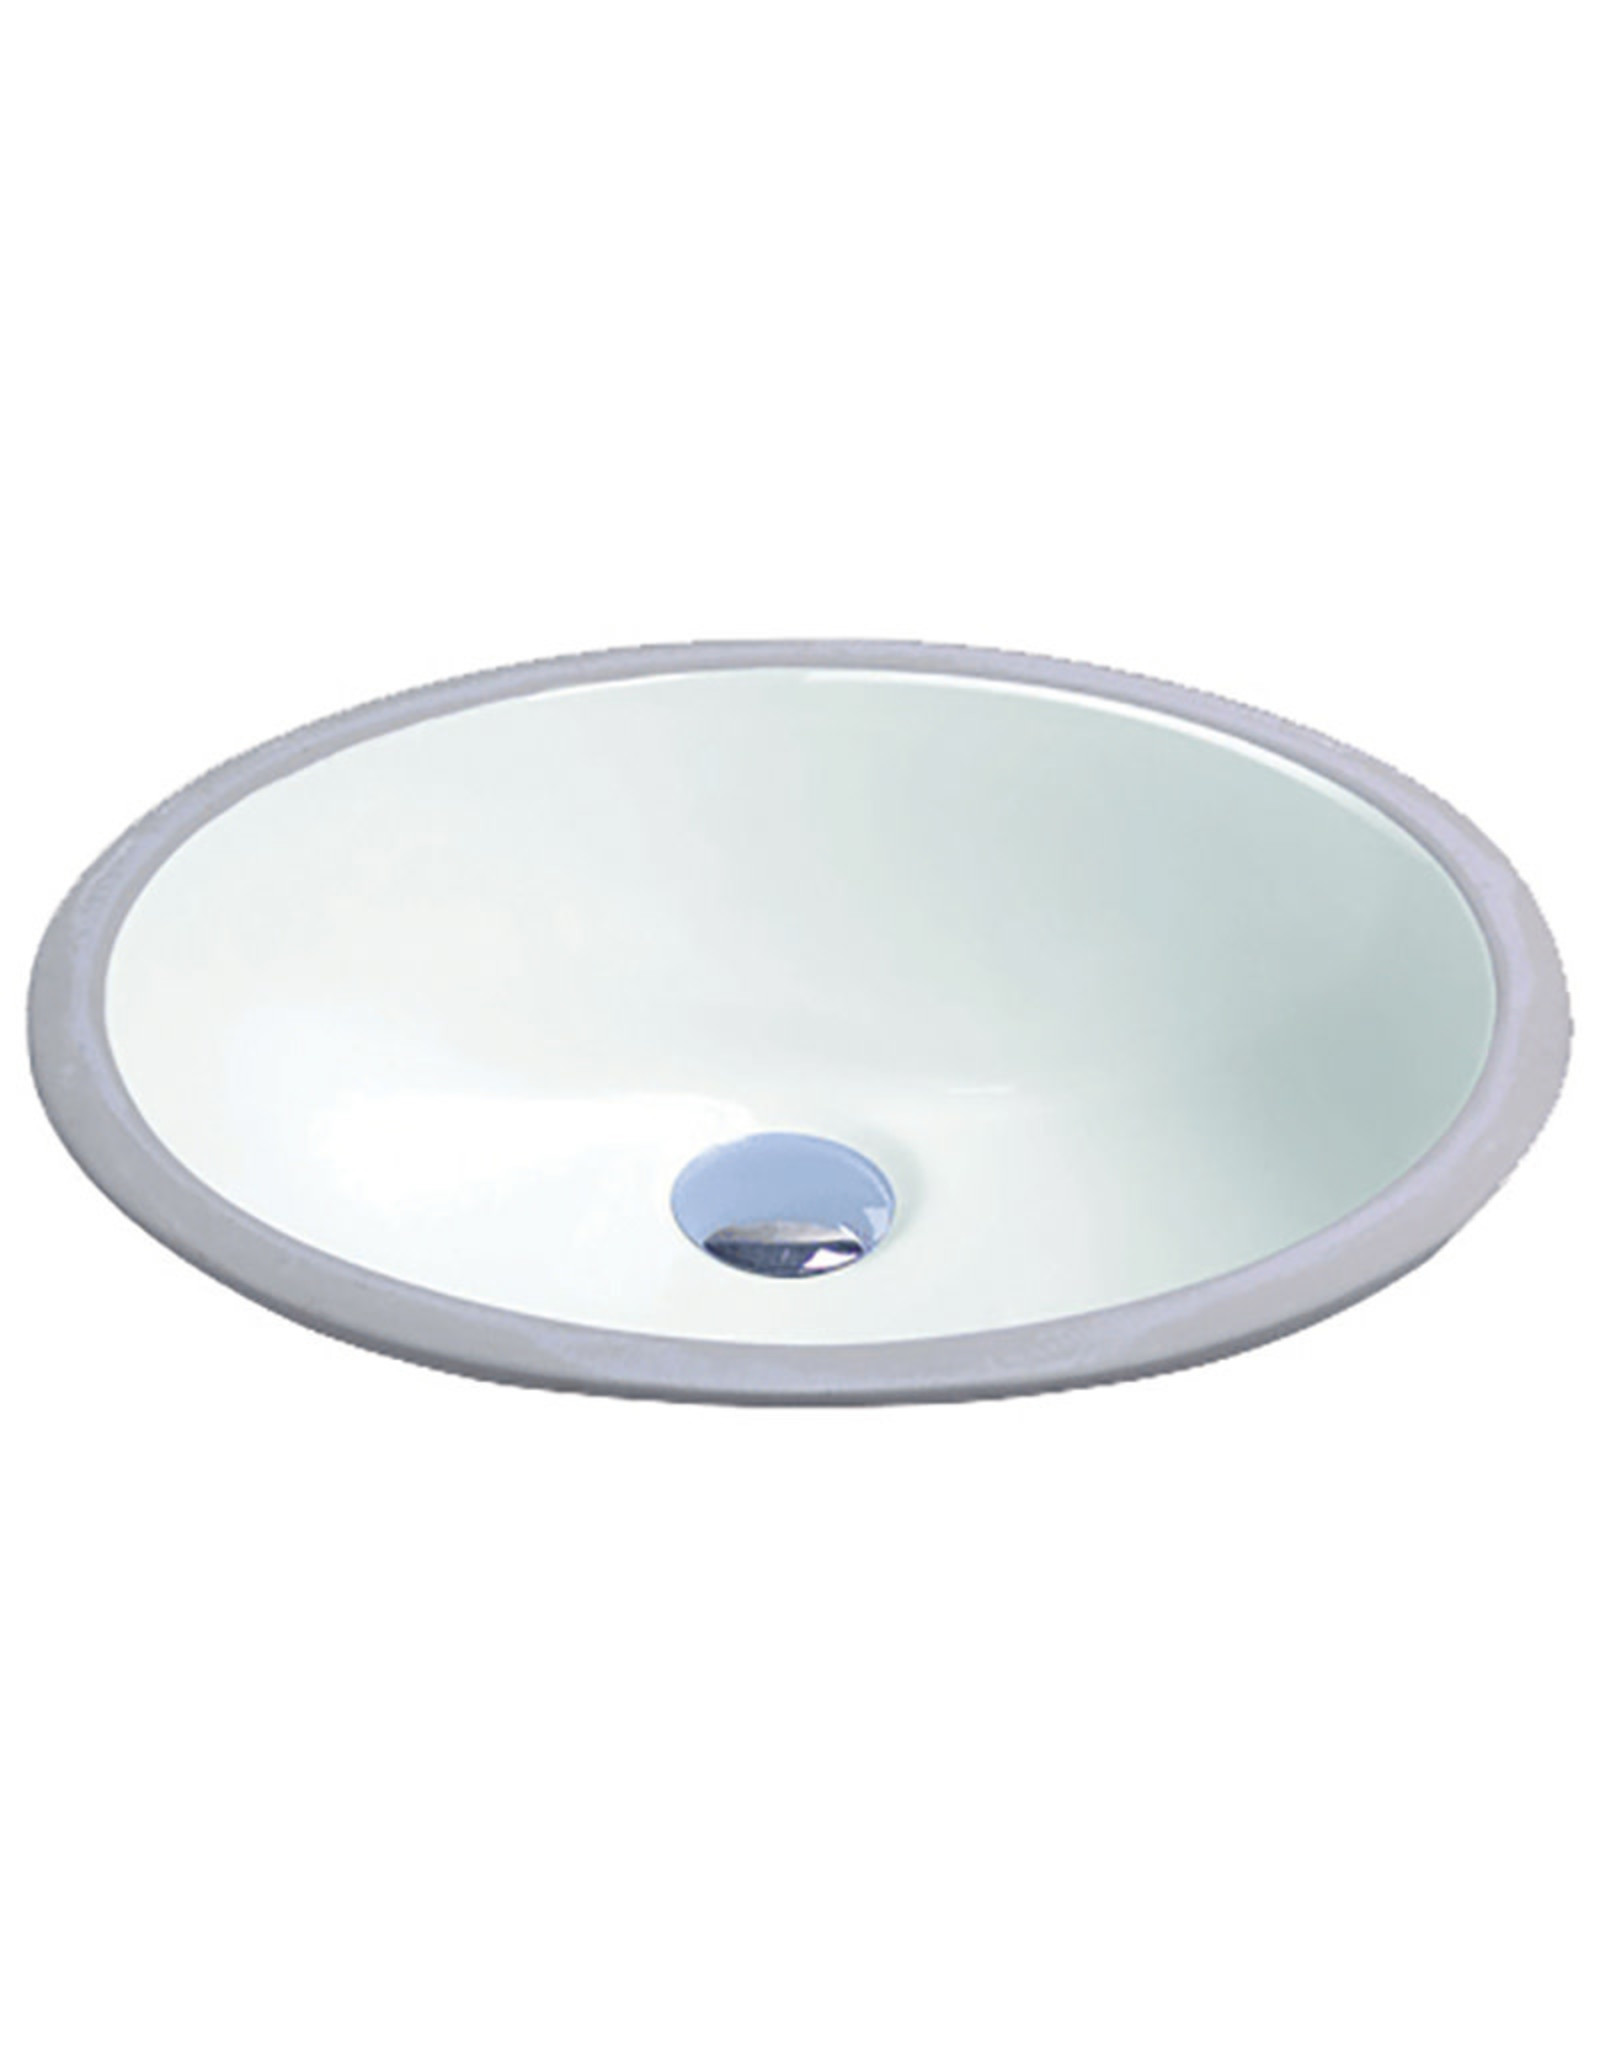 Vogt Bruck Undermount White Lav Sink